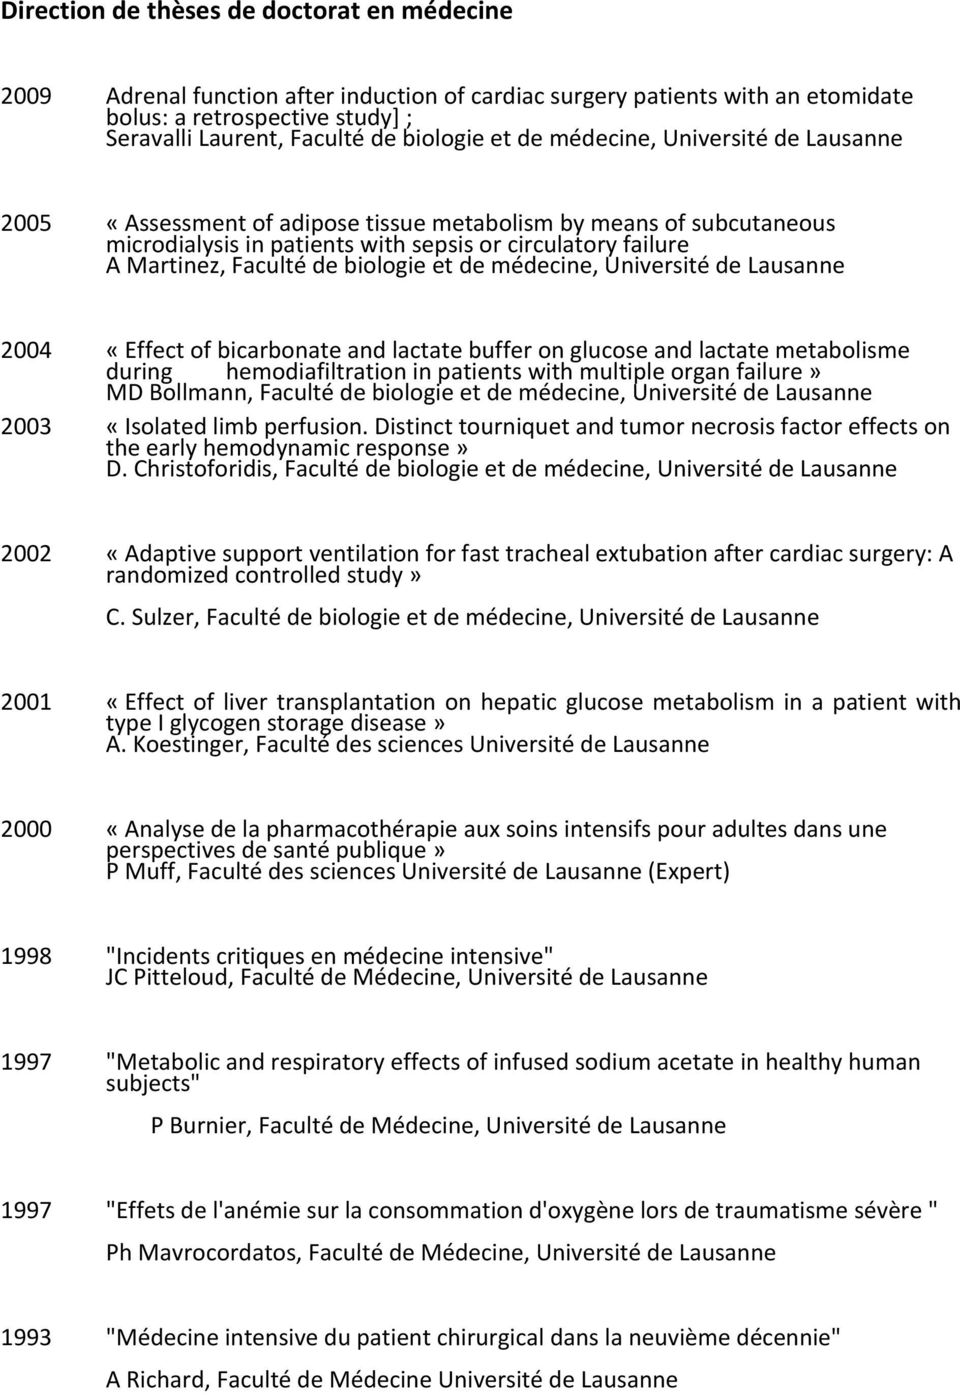 biologie et de médecine, Université de Lausanne 2004 «Effect of bicarbonate and lactate buffer on glucose and lactate metabolisme during hemodiafiltration in patients with multiple organ failure» MD